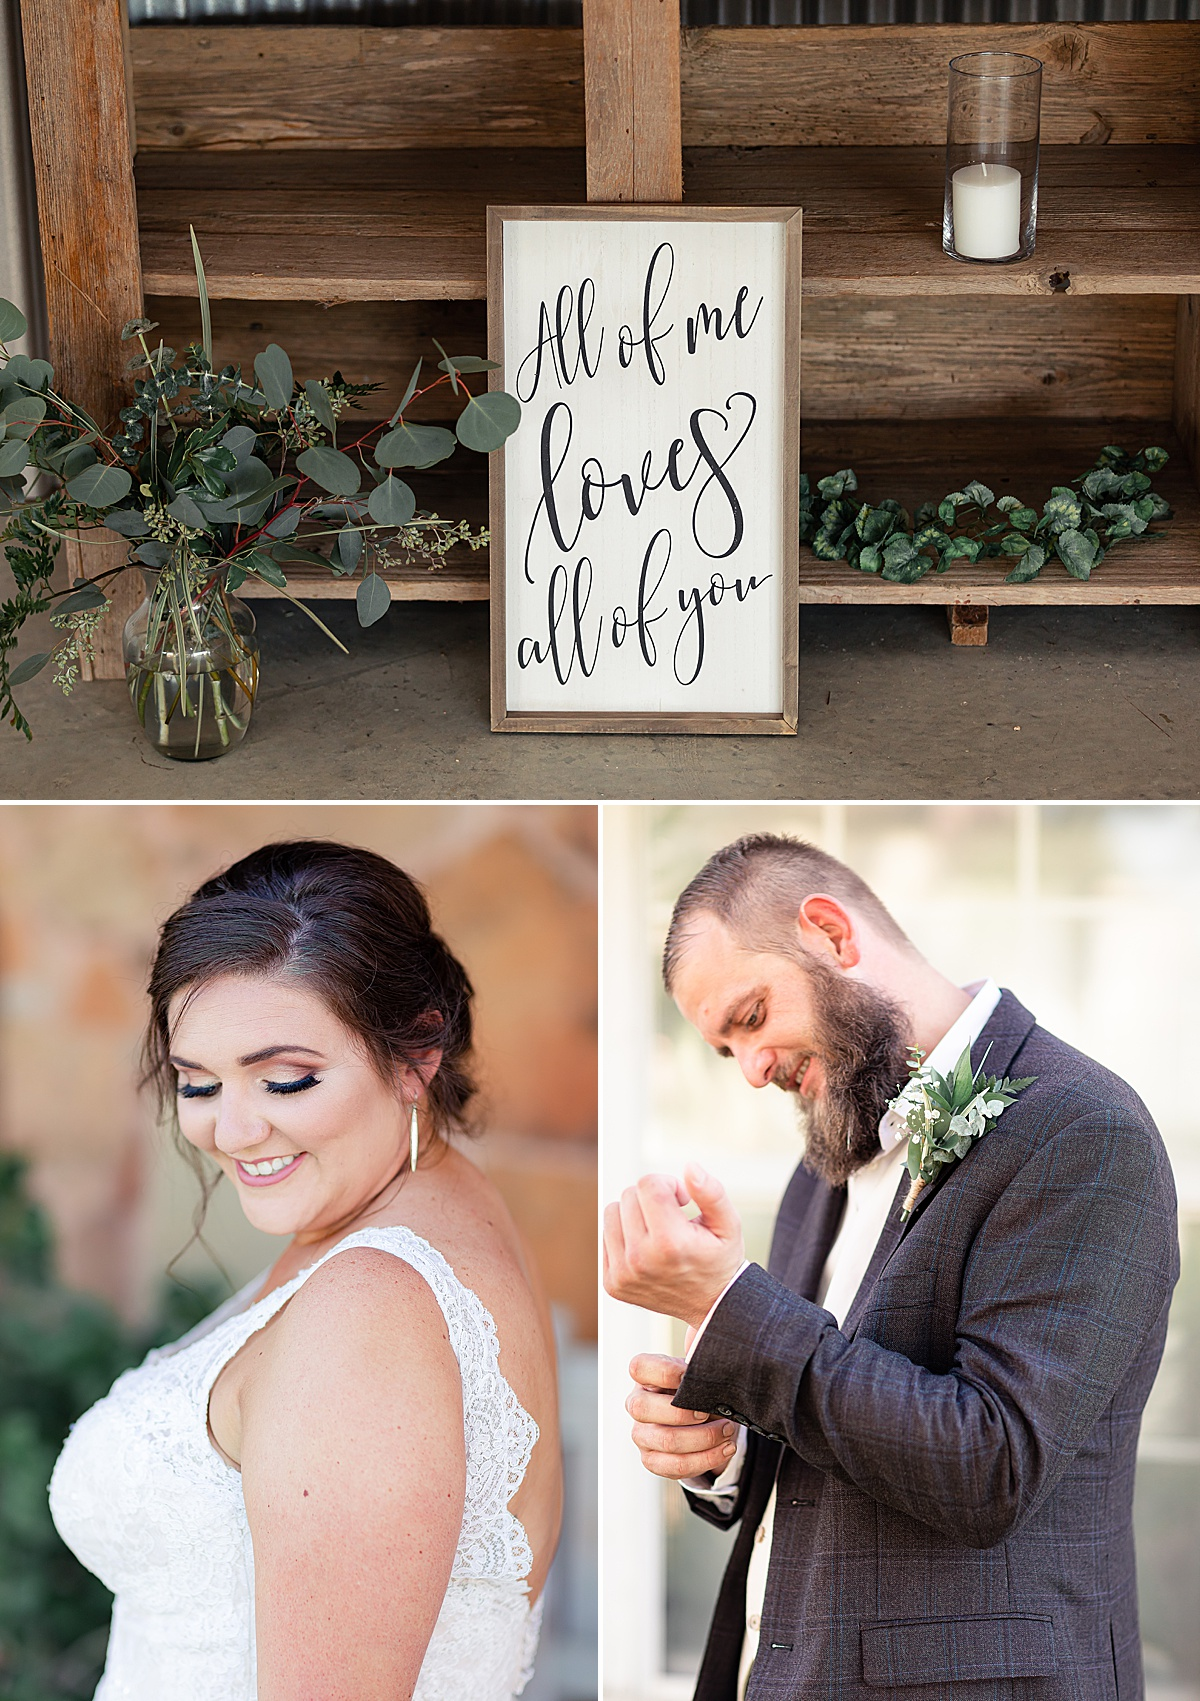 Rustic-Texas-Wedding-Hollow-Creek-Ranch-Carly-Barton-Photography_0134.jpg